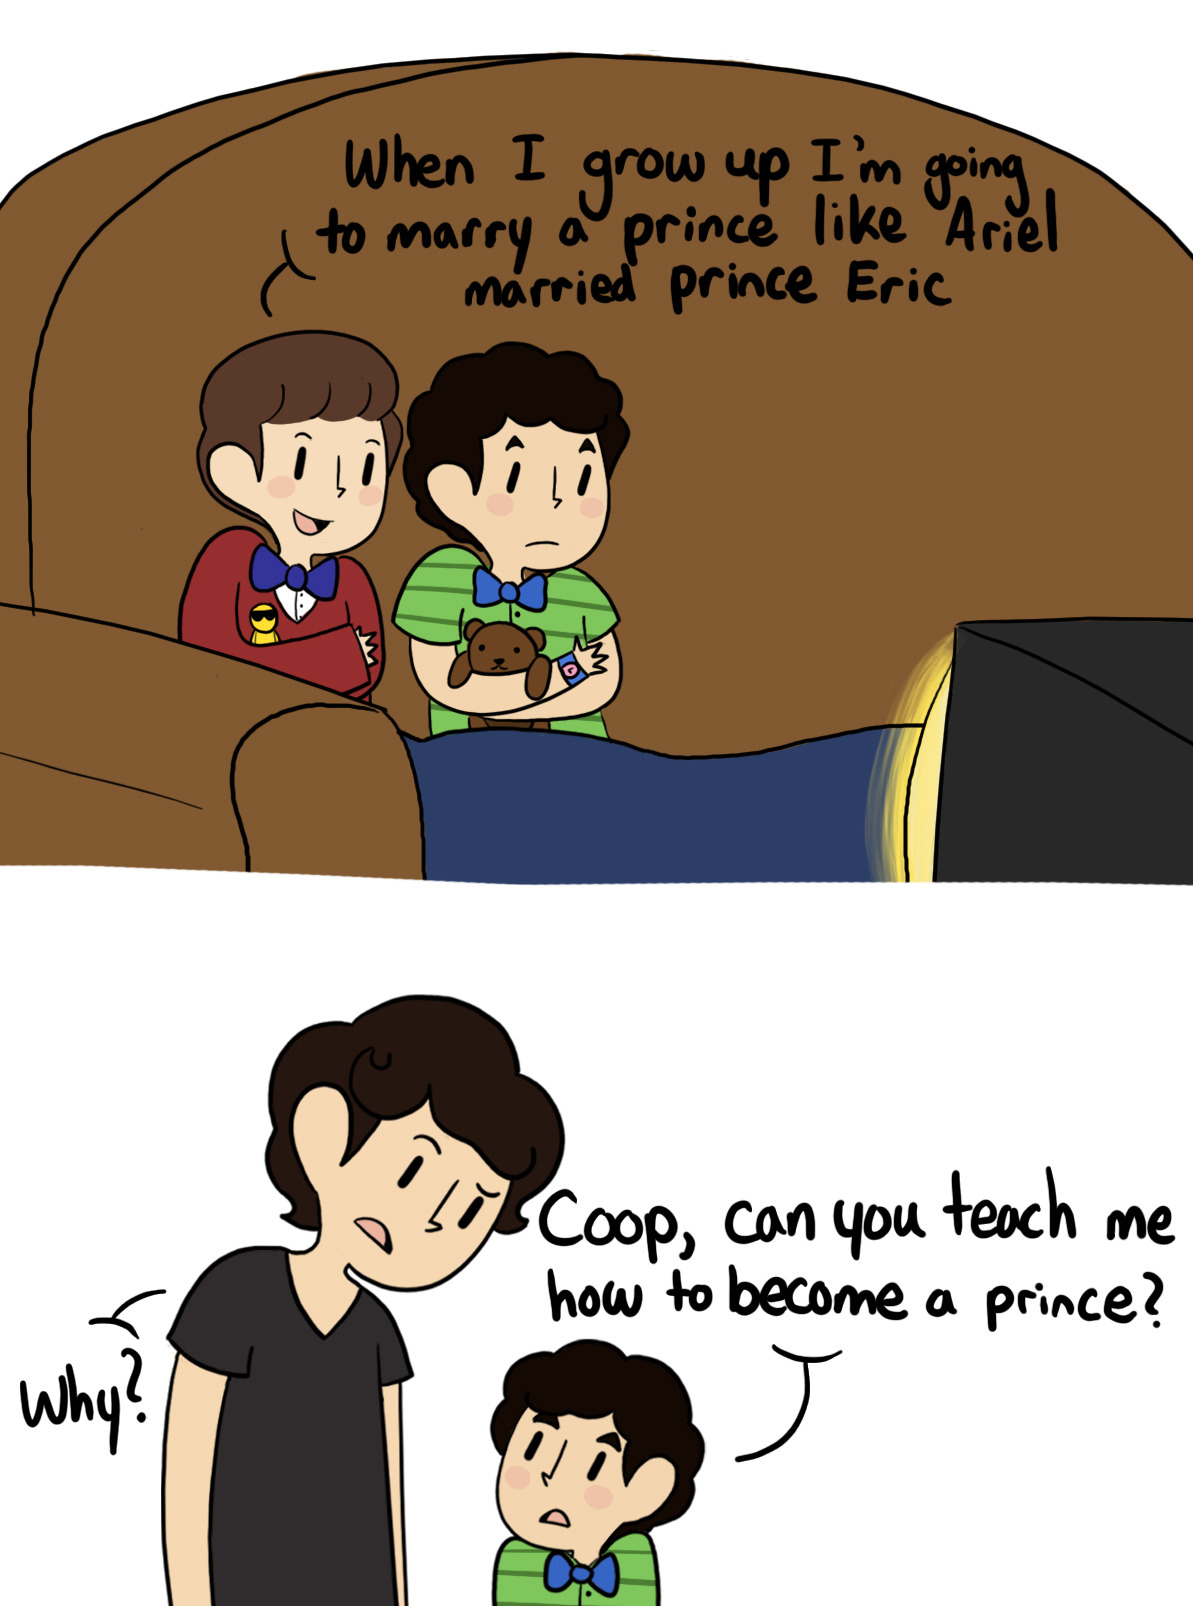 "inkystars:  egobus:  Kid!Klaine  ""Blaine? What's going on?"" Kurt frowned as Blaine sat him down on his couch. Blaine sighed, standing in front of him. ""Okay, so you said that you wanted to marry a prince so I went home and asked Cooper how to be a prince but he didn't make a lot of sense and wasn't really helpful but he said that if I wanted to be your prince I should sing you a song and point at you which seems silly but if it'll make me a prince, I'll do it for you plus there was this song that mommy was listening to yesterday and it reminded me of you."" He took a deep breath. ""So here goes.""  He started singing, his young voice slightly cracking and slurring past a couple of lyrics. You'd think that people would have had enough of silly love songs But I look around me and I see it isn't so, oh no Some people want to fill the world with silly love songs But what's wrong with that? I'd like to know. 'Cause here I go again… I love you. He made sure to point right at Kurt as he said, ""you"". I love you. When he'd finished, Kurt was staring at him awestruck on the couch. ""So…"" Blaine said nervously. ""What did you think?"" Kurt scooted forward and took Blaine's hand. ""Wow, Blaine."" he whispered, awestruck. ""That was amazing. You're definitely my prince."" Blaine grinned. ""Good, because I love you, Kurt and I want to be your prince."" He tightened his hold on his hand. ""Does this mean that we're married now?"" Kurt shook his head bashfully, blushing before he leaned over and kissed Blaine on the cheek. ""There,"" he said shyly. ""Now we're married."" Blaine grinned and hugged Kurt, his husband. And then they watched Aladdin."